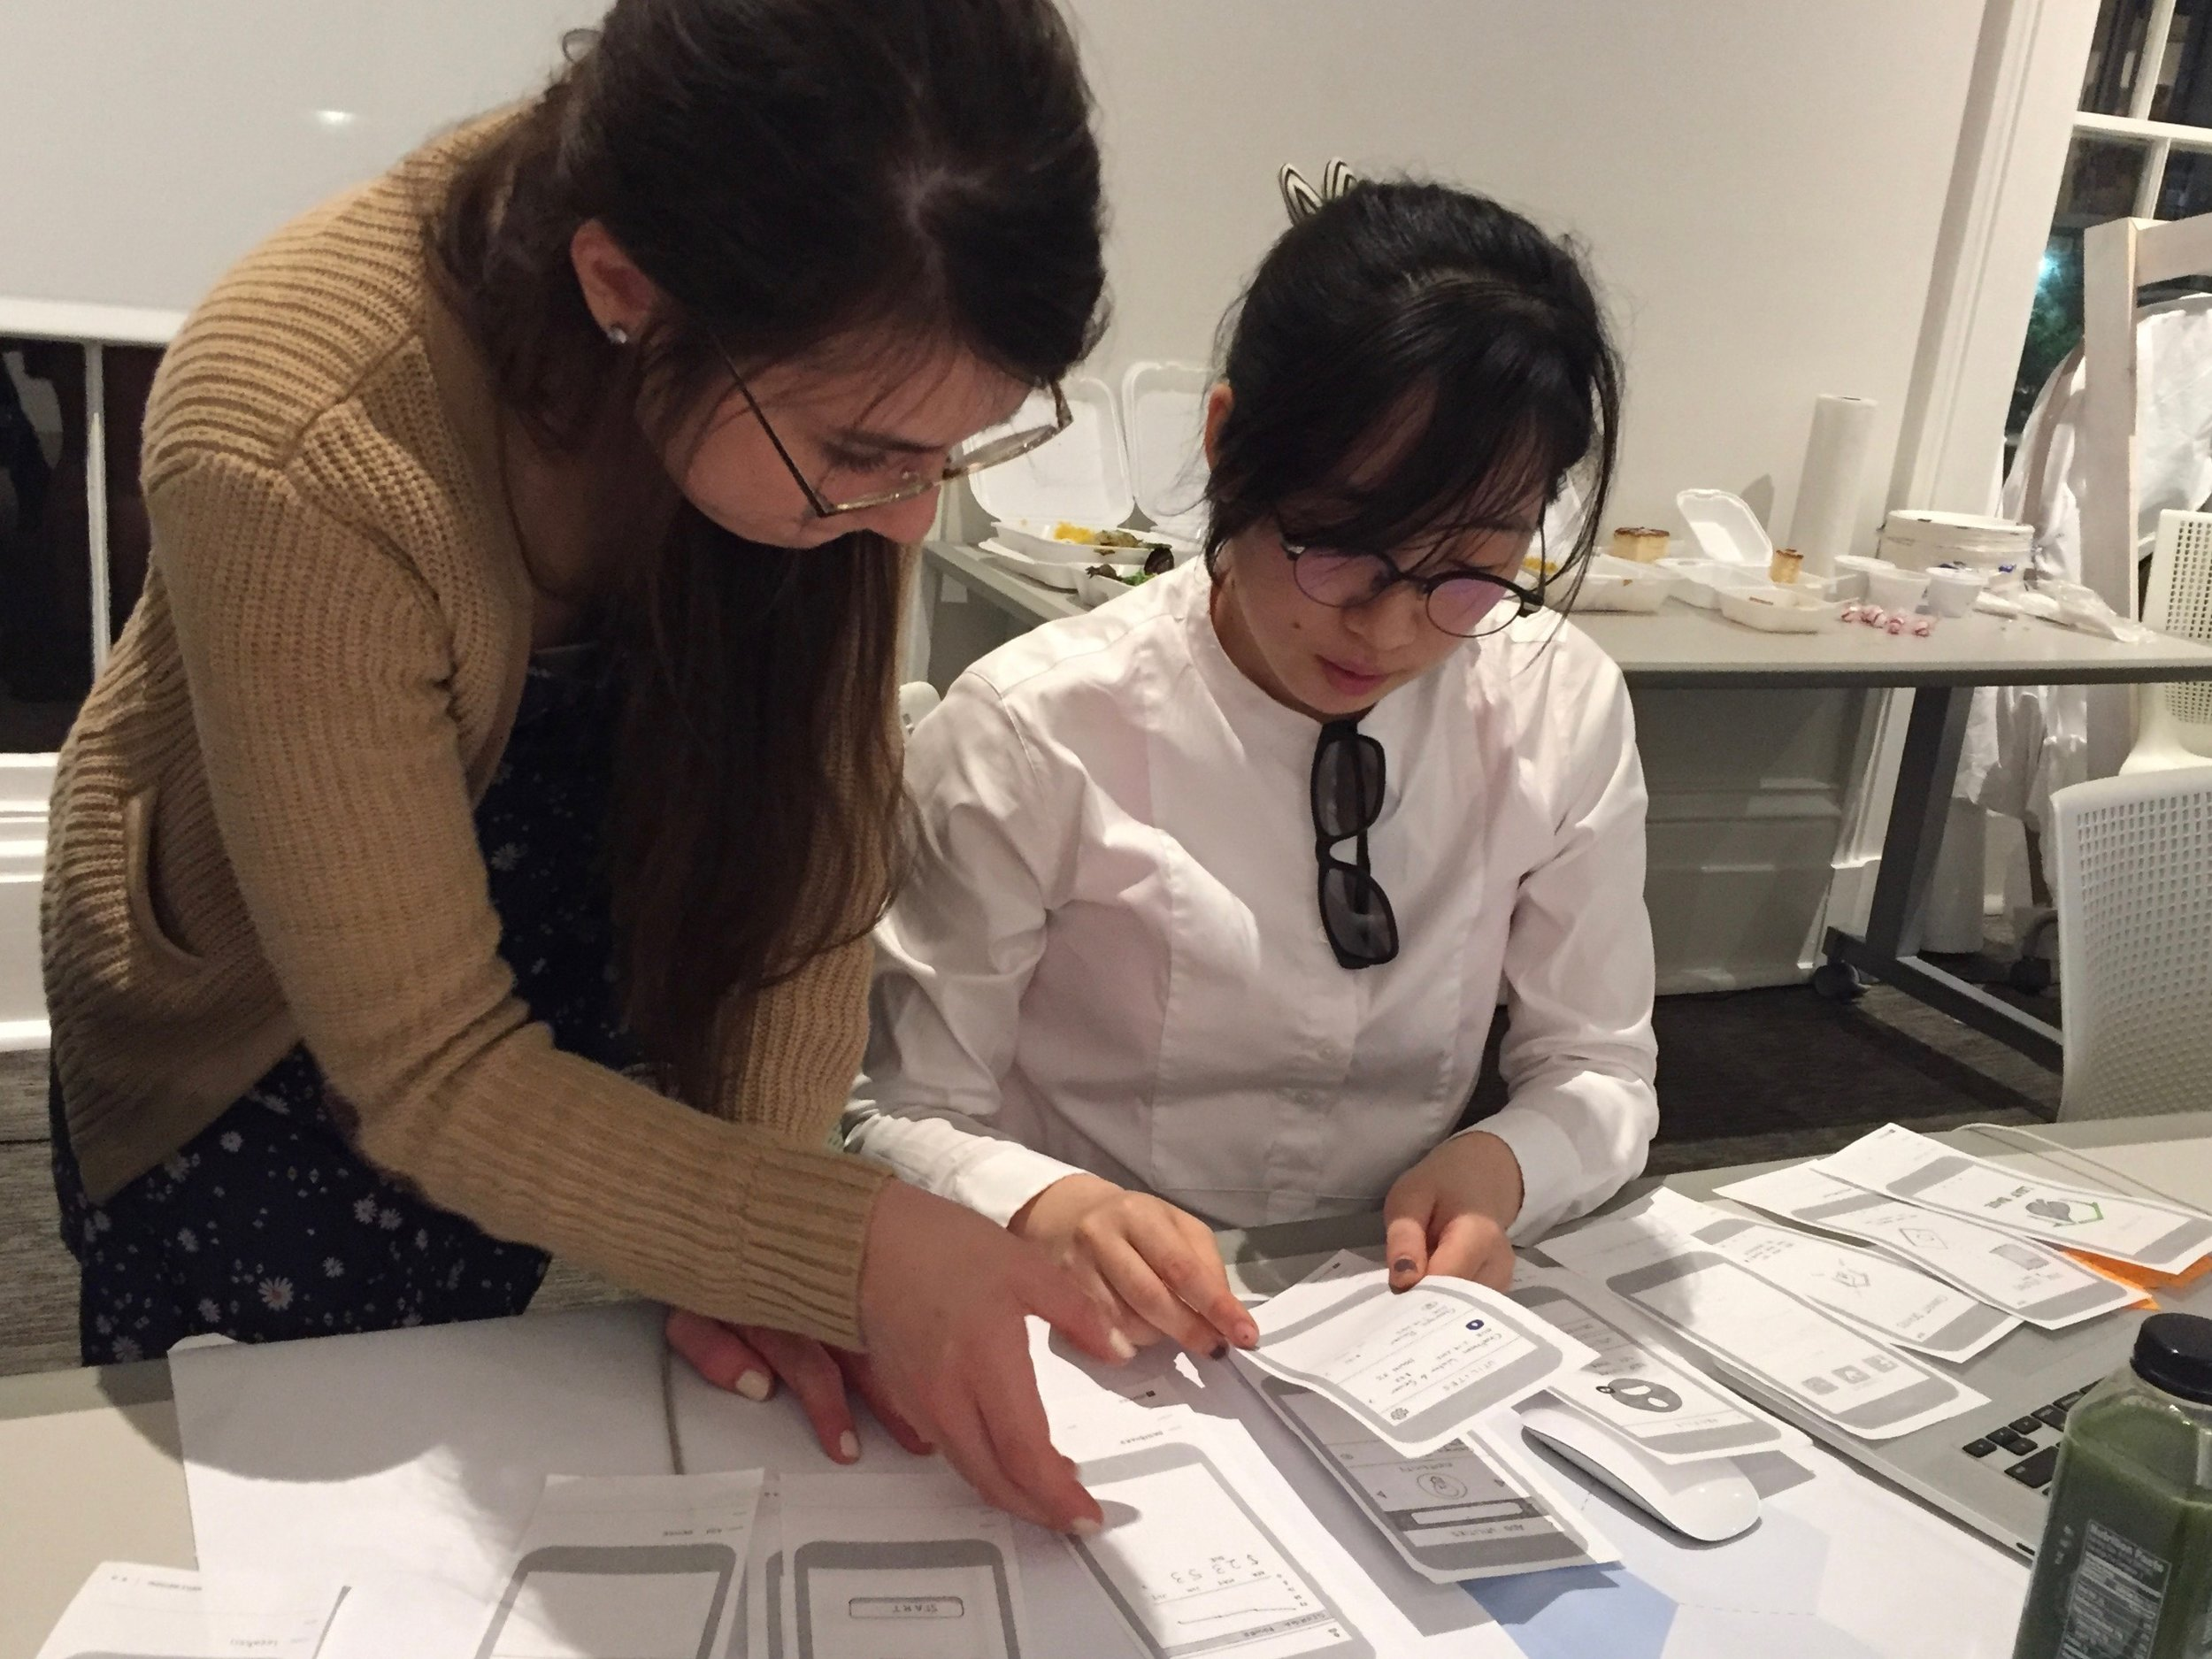 Rapid Prototyping - Getting users involved early in the design process means catching usability issues before wasting dev hours. Adaptability is key to making the simplest but most powerful experience.